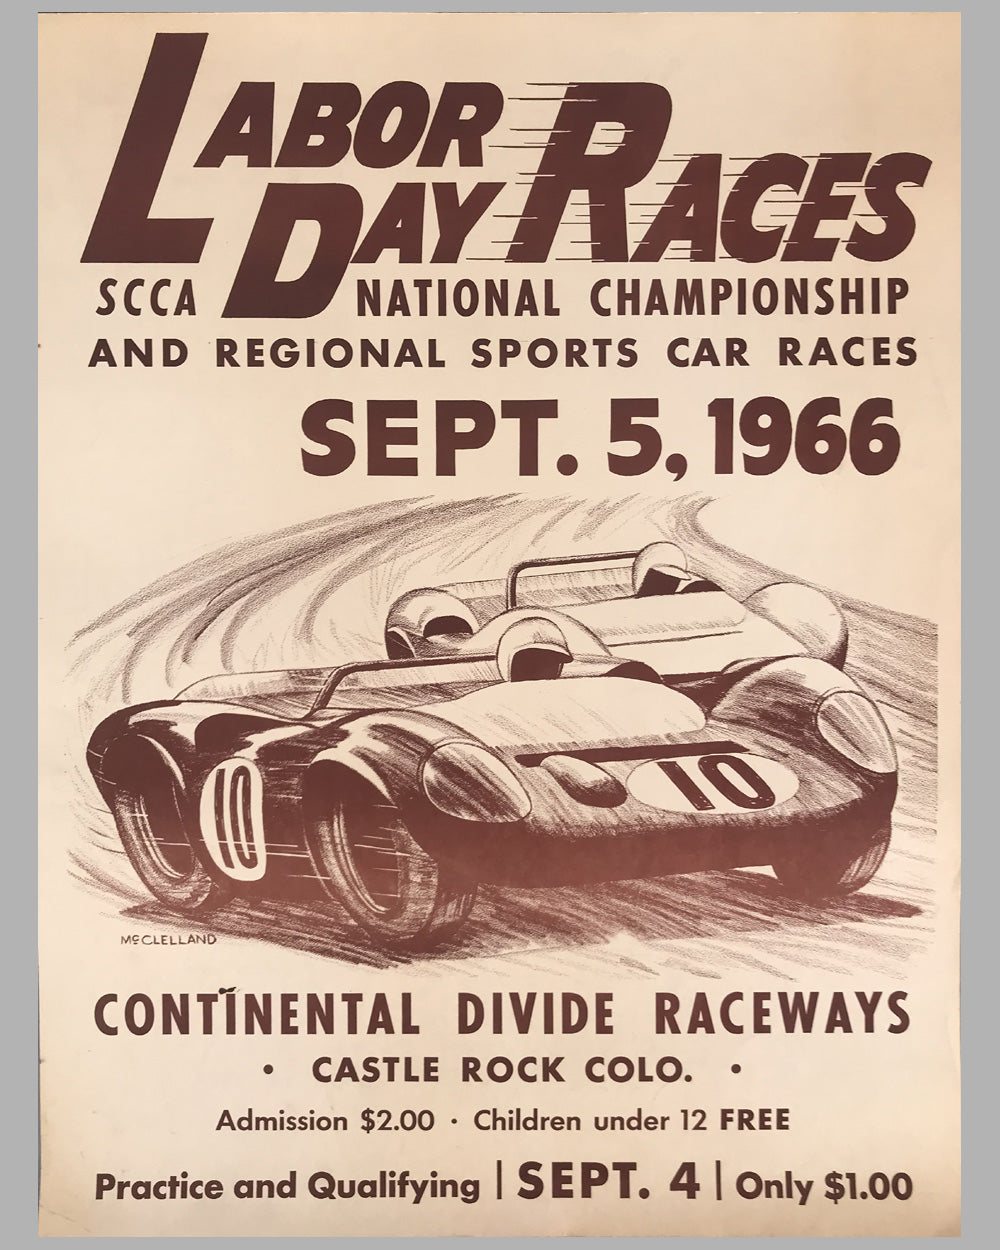 1966 SCCA Continental Divide Raceways Labor Day Races original event poster